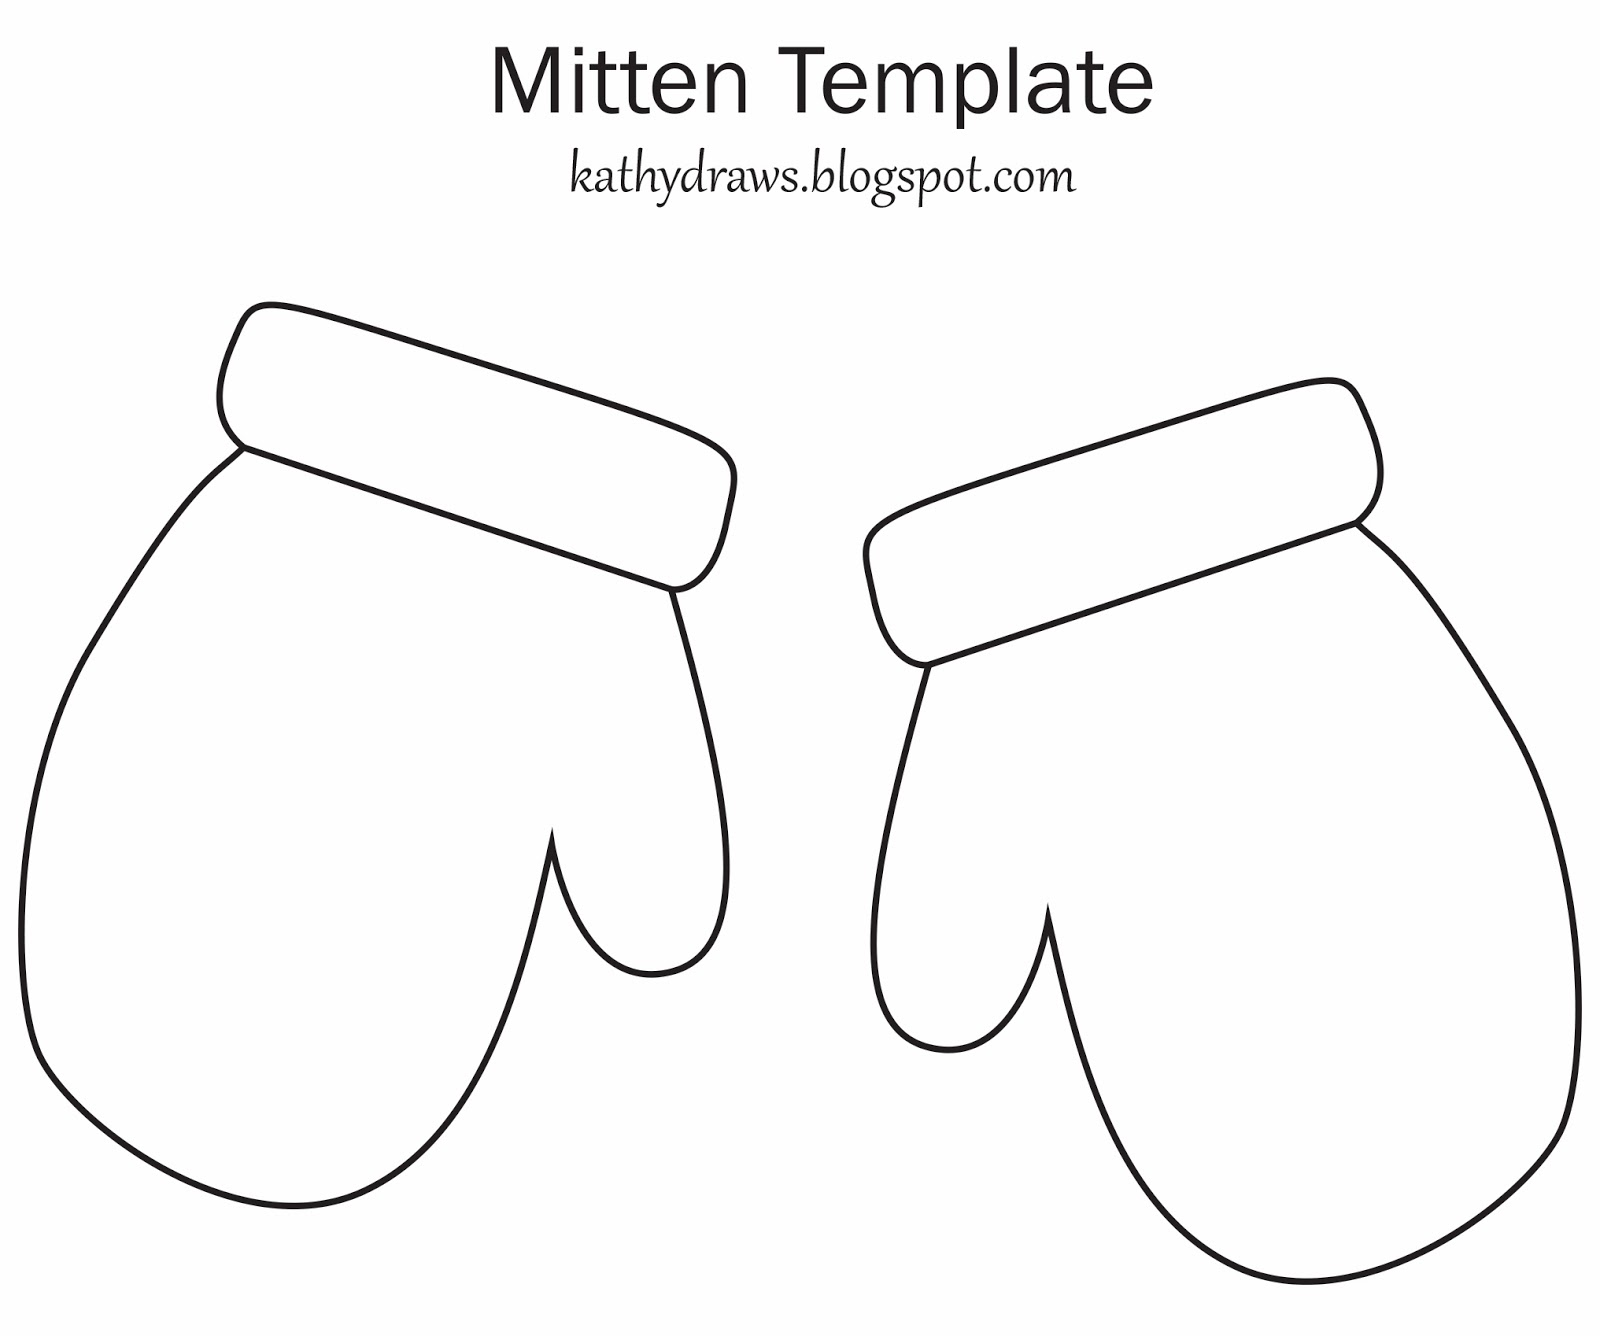 Mitten Template Hot Glue Gun School Holiday Decorations The Pictures